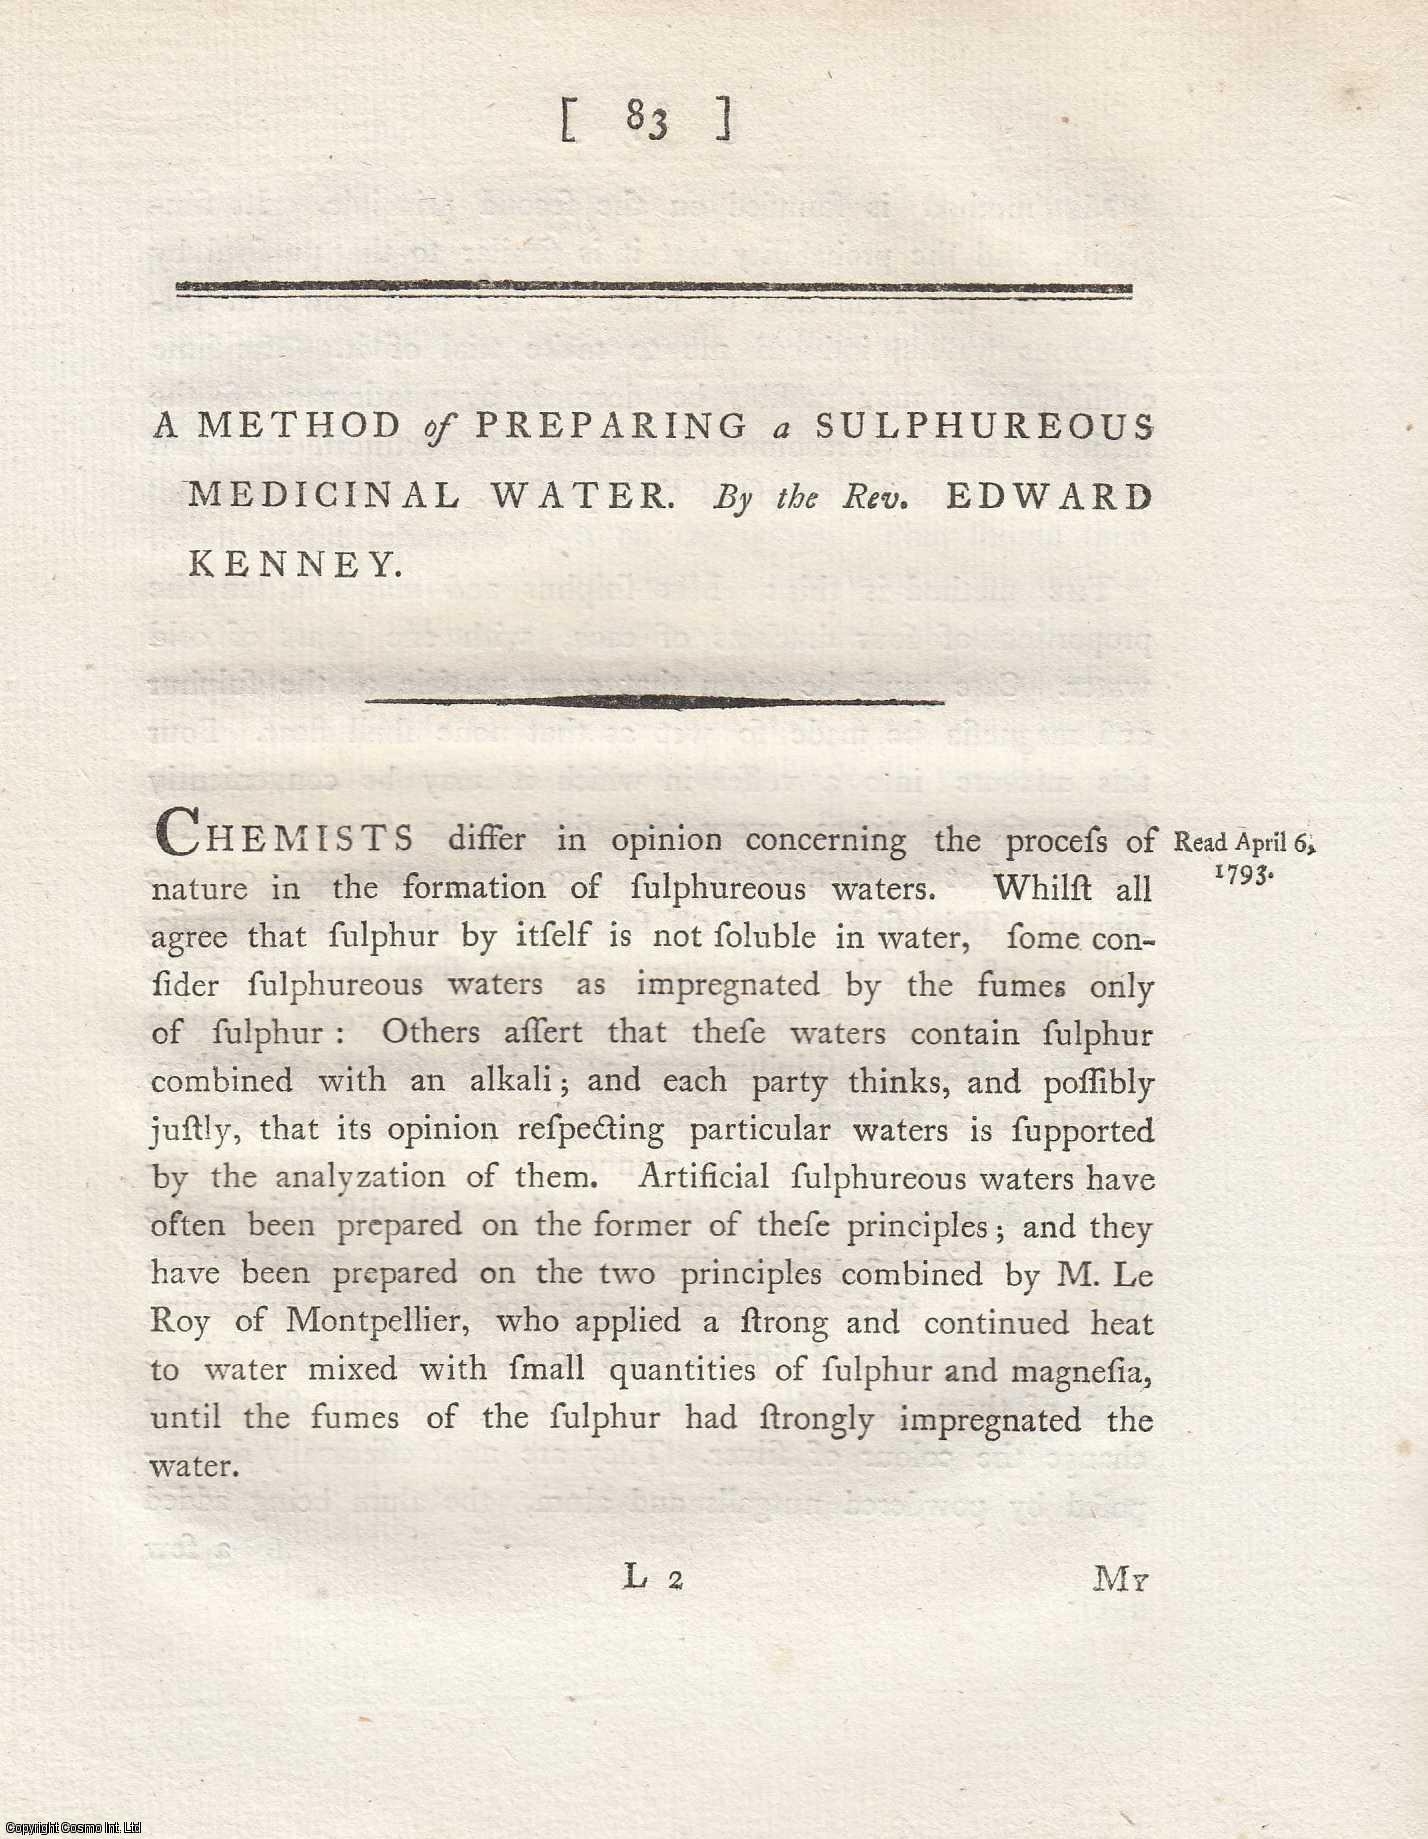 A Method of Preparing a Sulpureous Medicinal Water.  From Transactions of the Royal Irish Academy., Kenney, Edward.